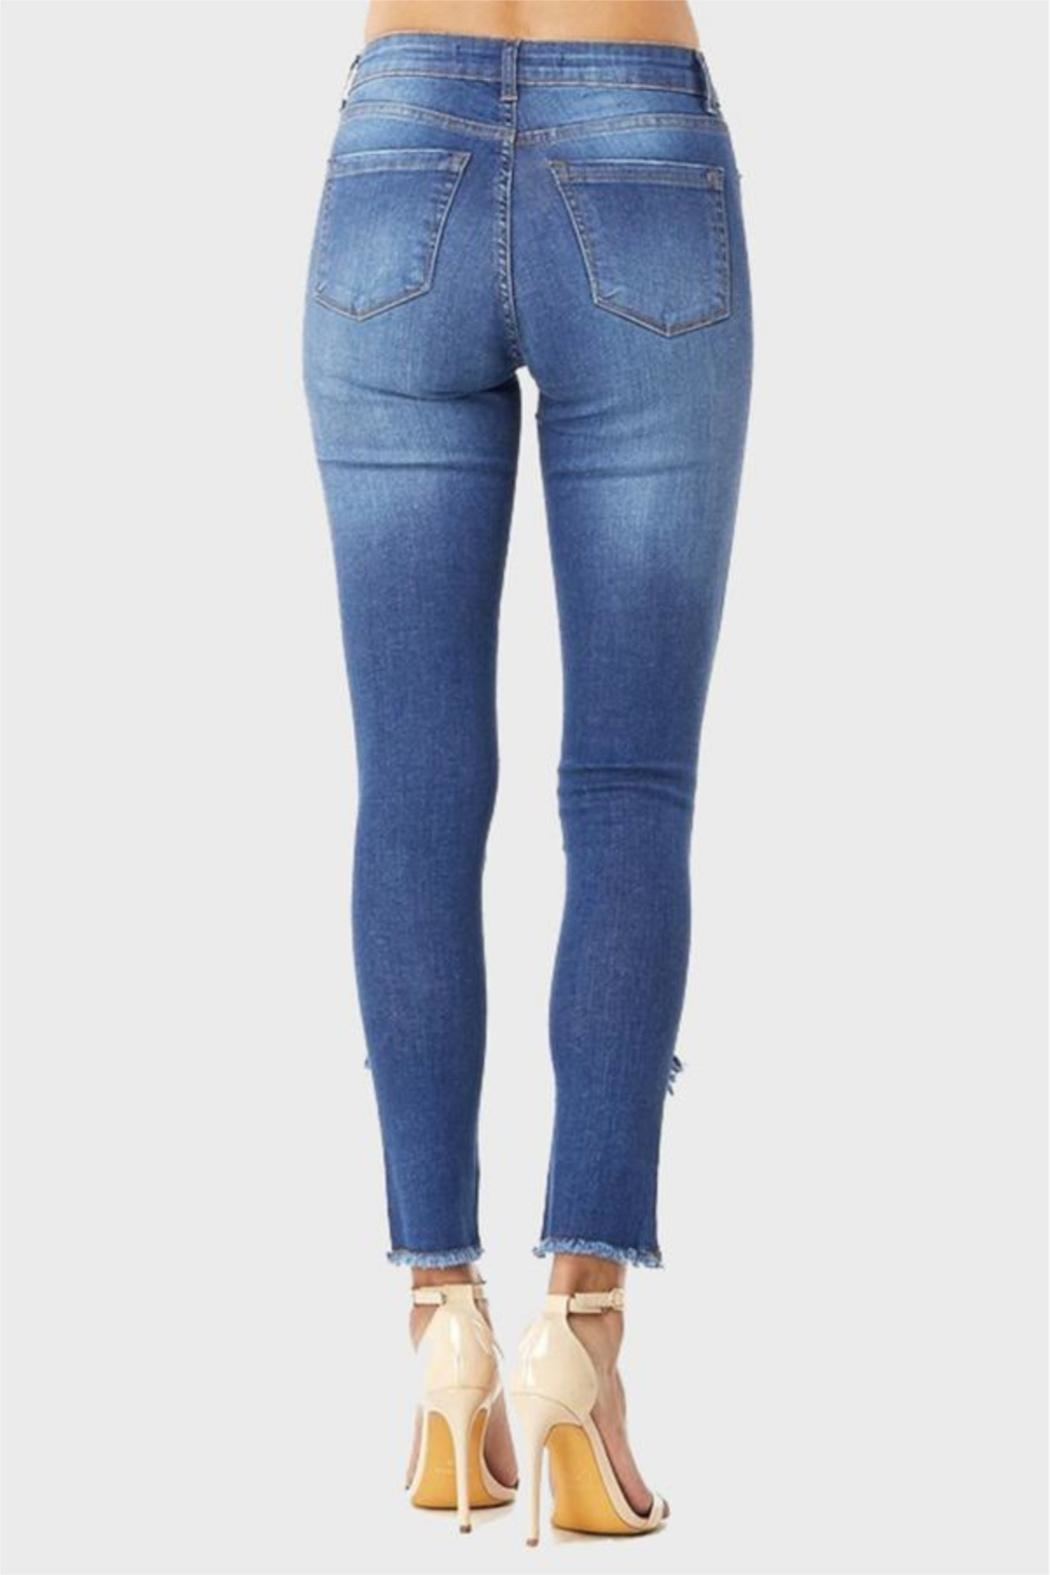 Muselooks Mid-Rise Frayed-Ankle Skinny-Jean - Front Full Image